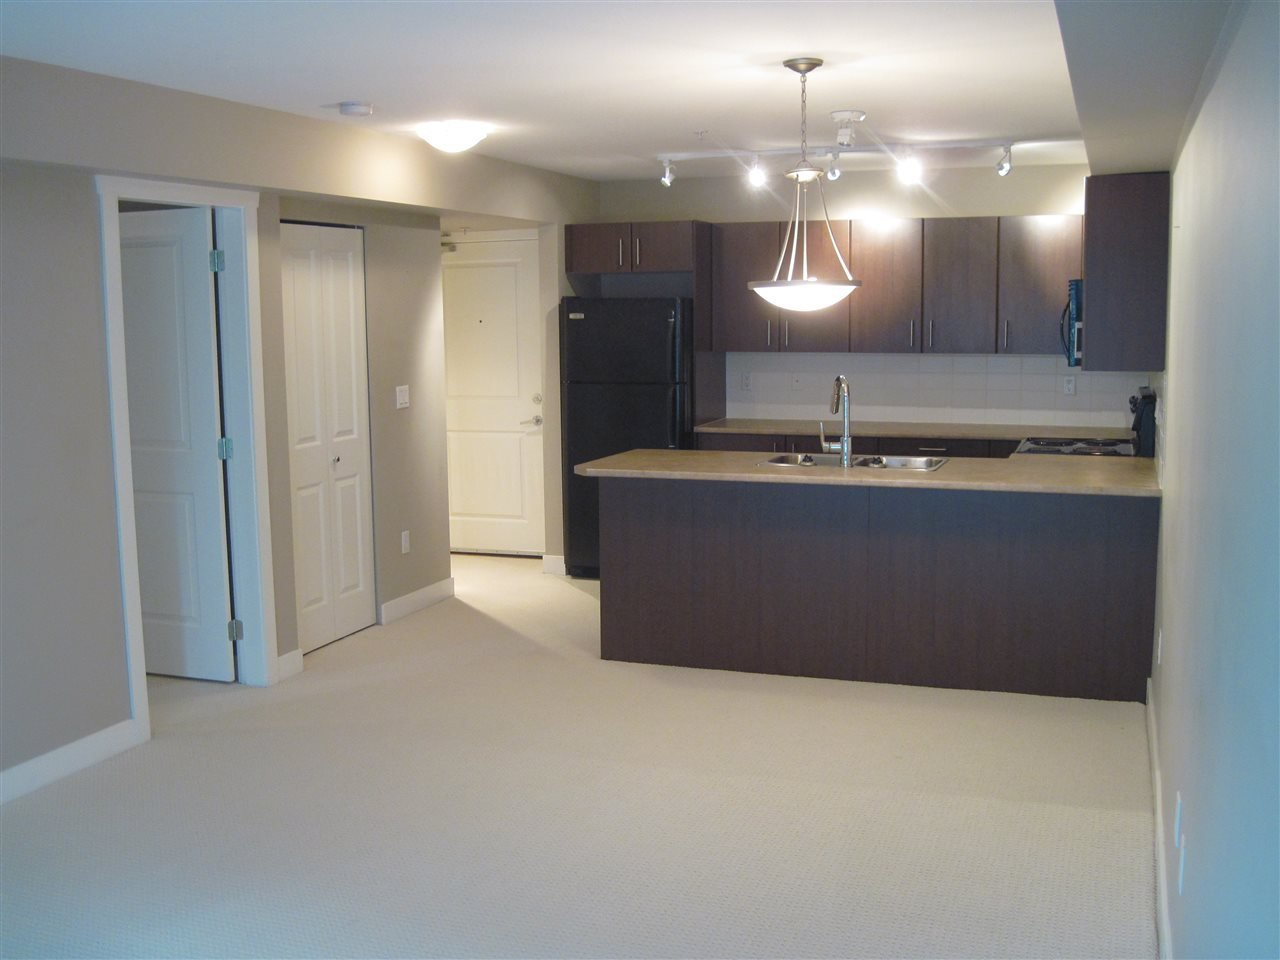 """Main Photo: 216 45567 YALE Road in Chilliwack: Chilliwack W Young-Well Condo for sale in """"THE VIBE"""" : MLS®# R2392272"""